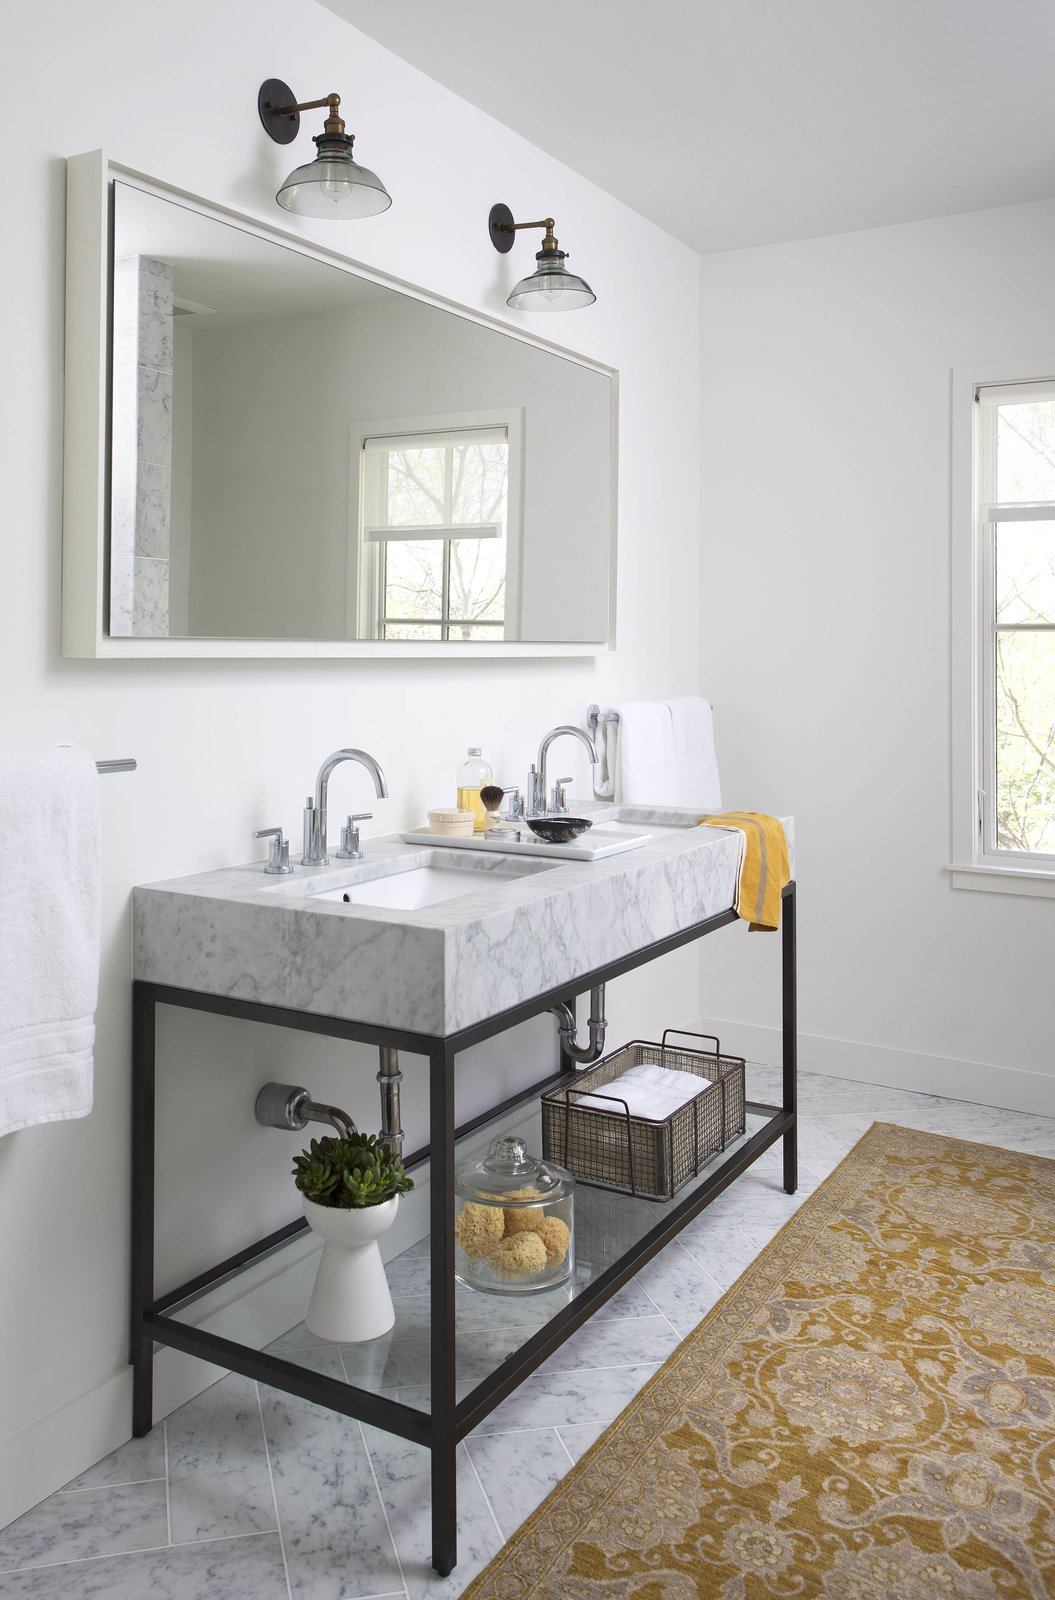 Photo 4 of 21 in Mad About Marble: 20 Kitchens and Bathrooms from ...